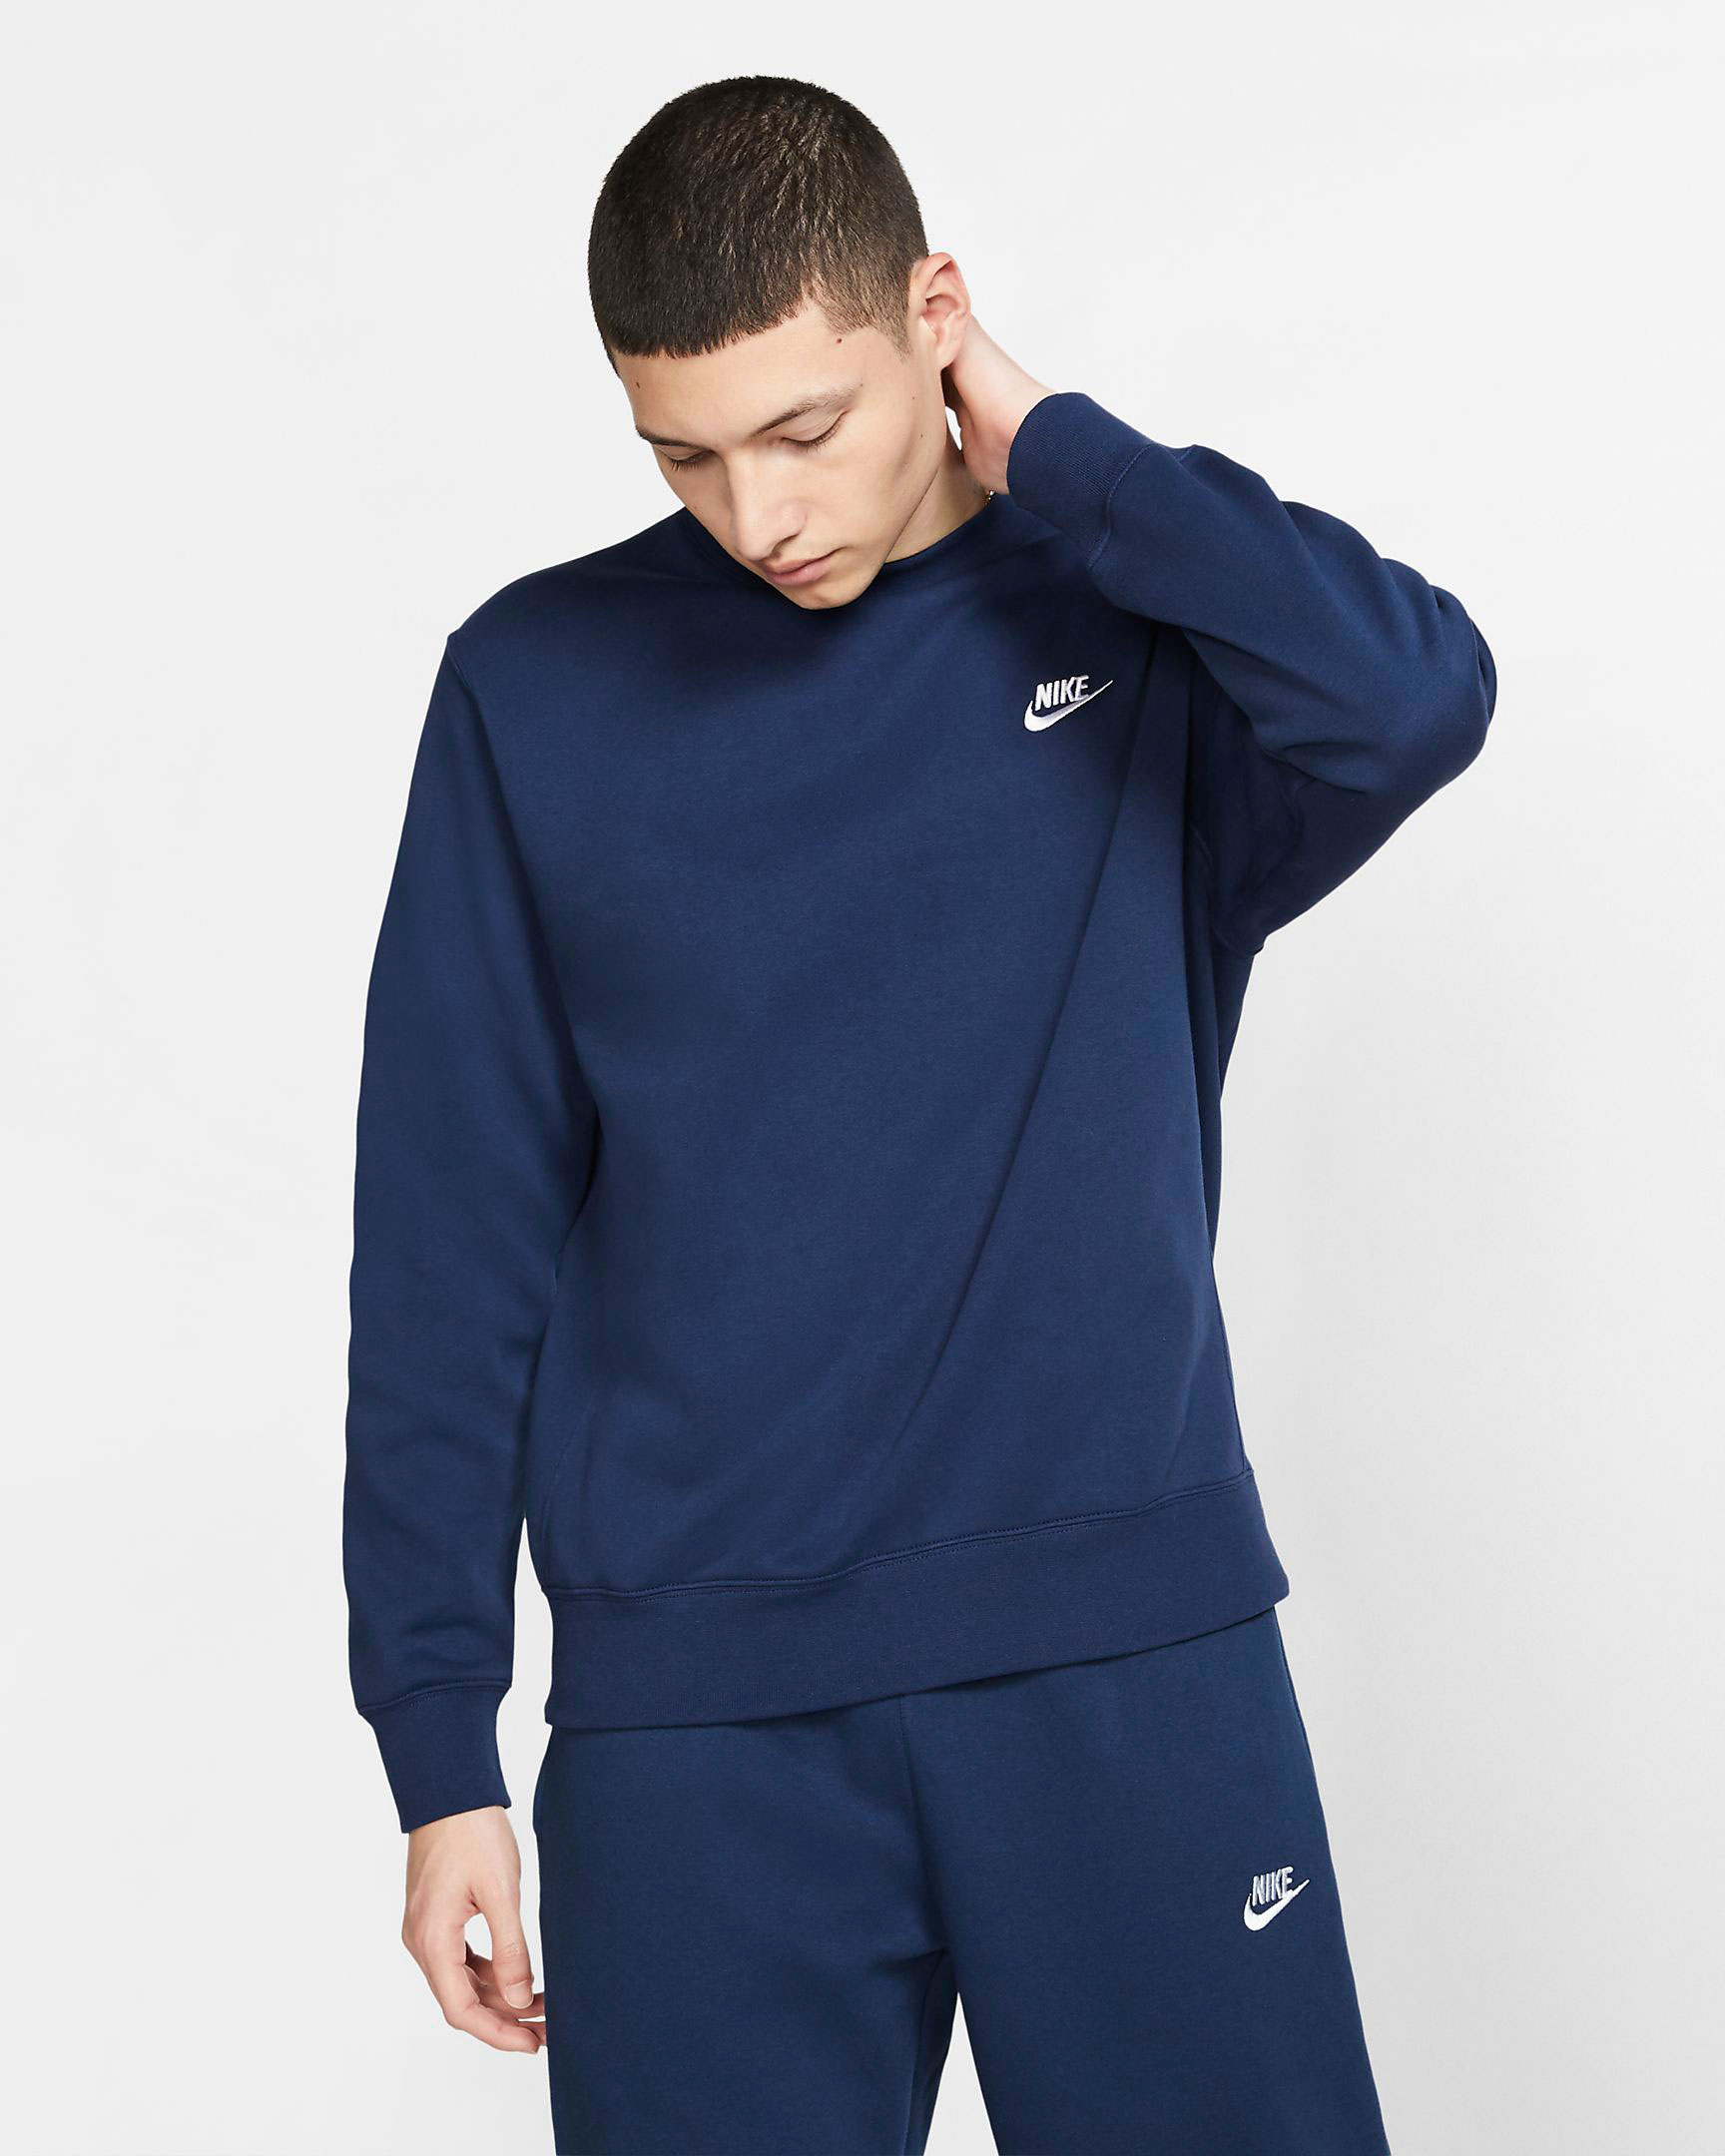 nike-midnight-navy-chill-sneaker-club-crew-sweatshirt